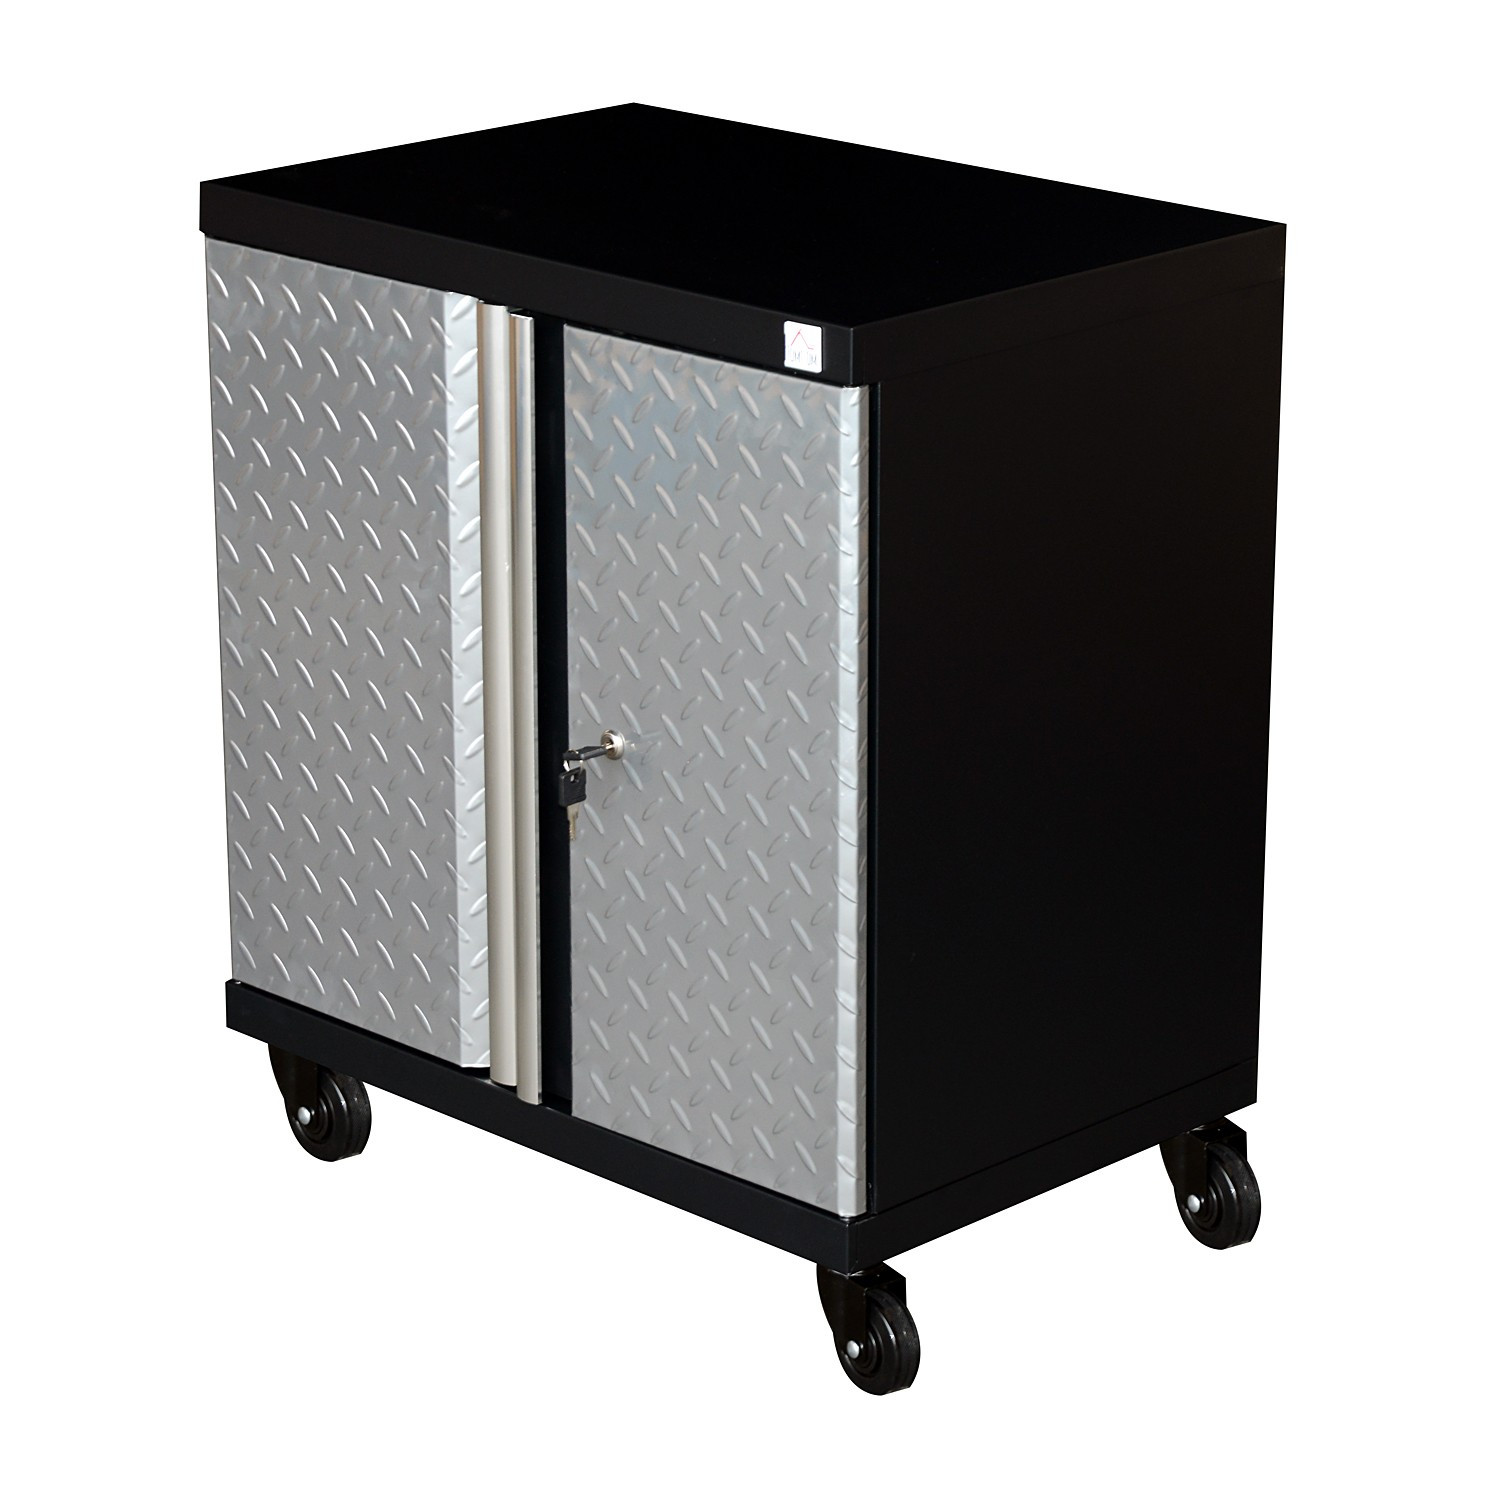 Best ideas about Rolling Storage Cabinet . Save or Pin Hom Metal Rolling Tool Storage Cabinet Silver Black Now.